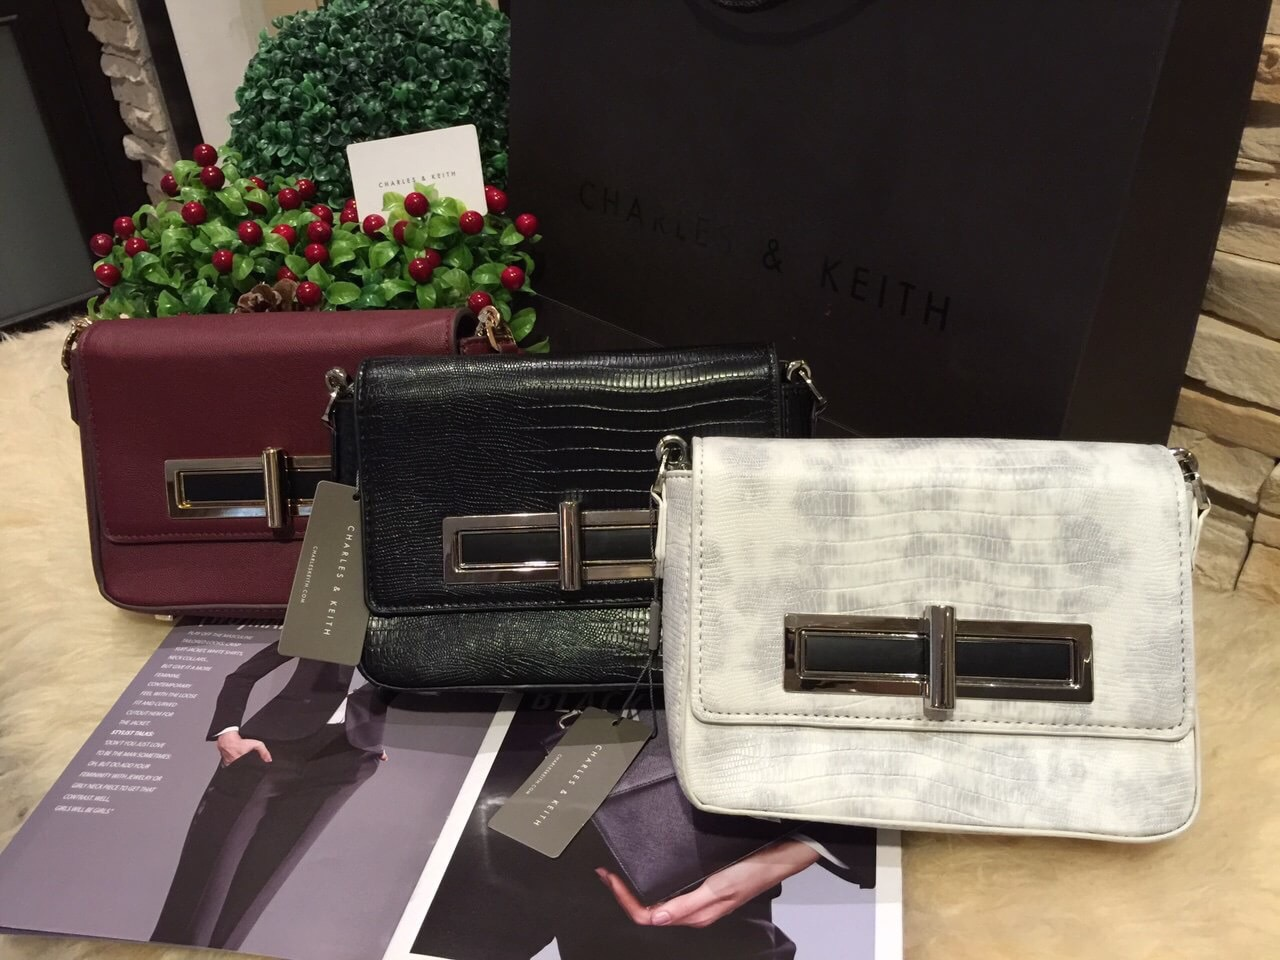 CHARLES & KEITH TURN-LOCK CROSSBODY OUTLET BAG